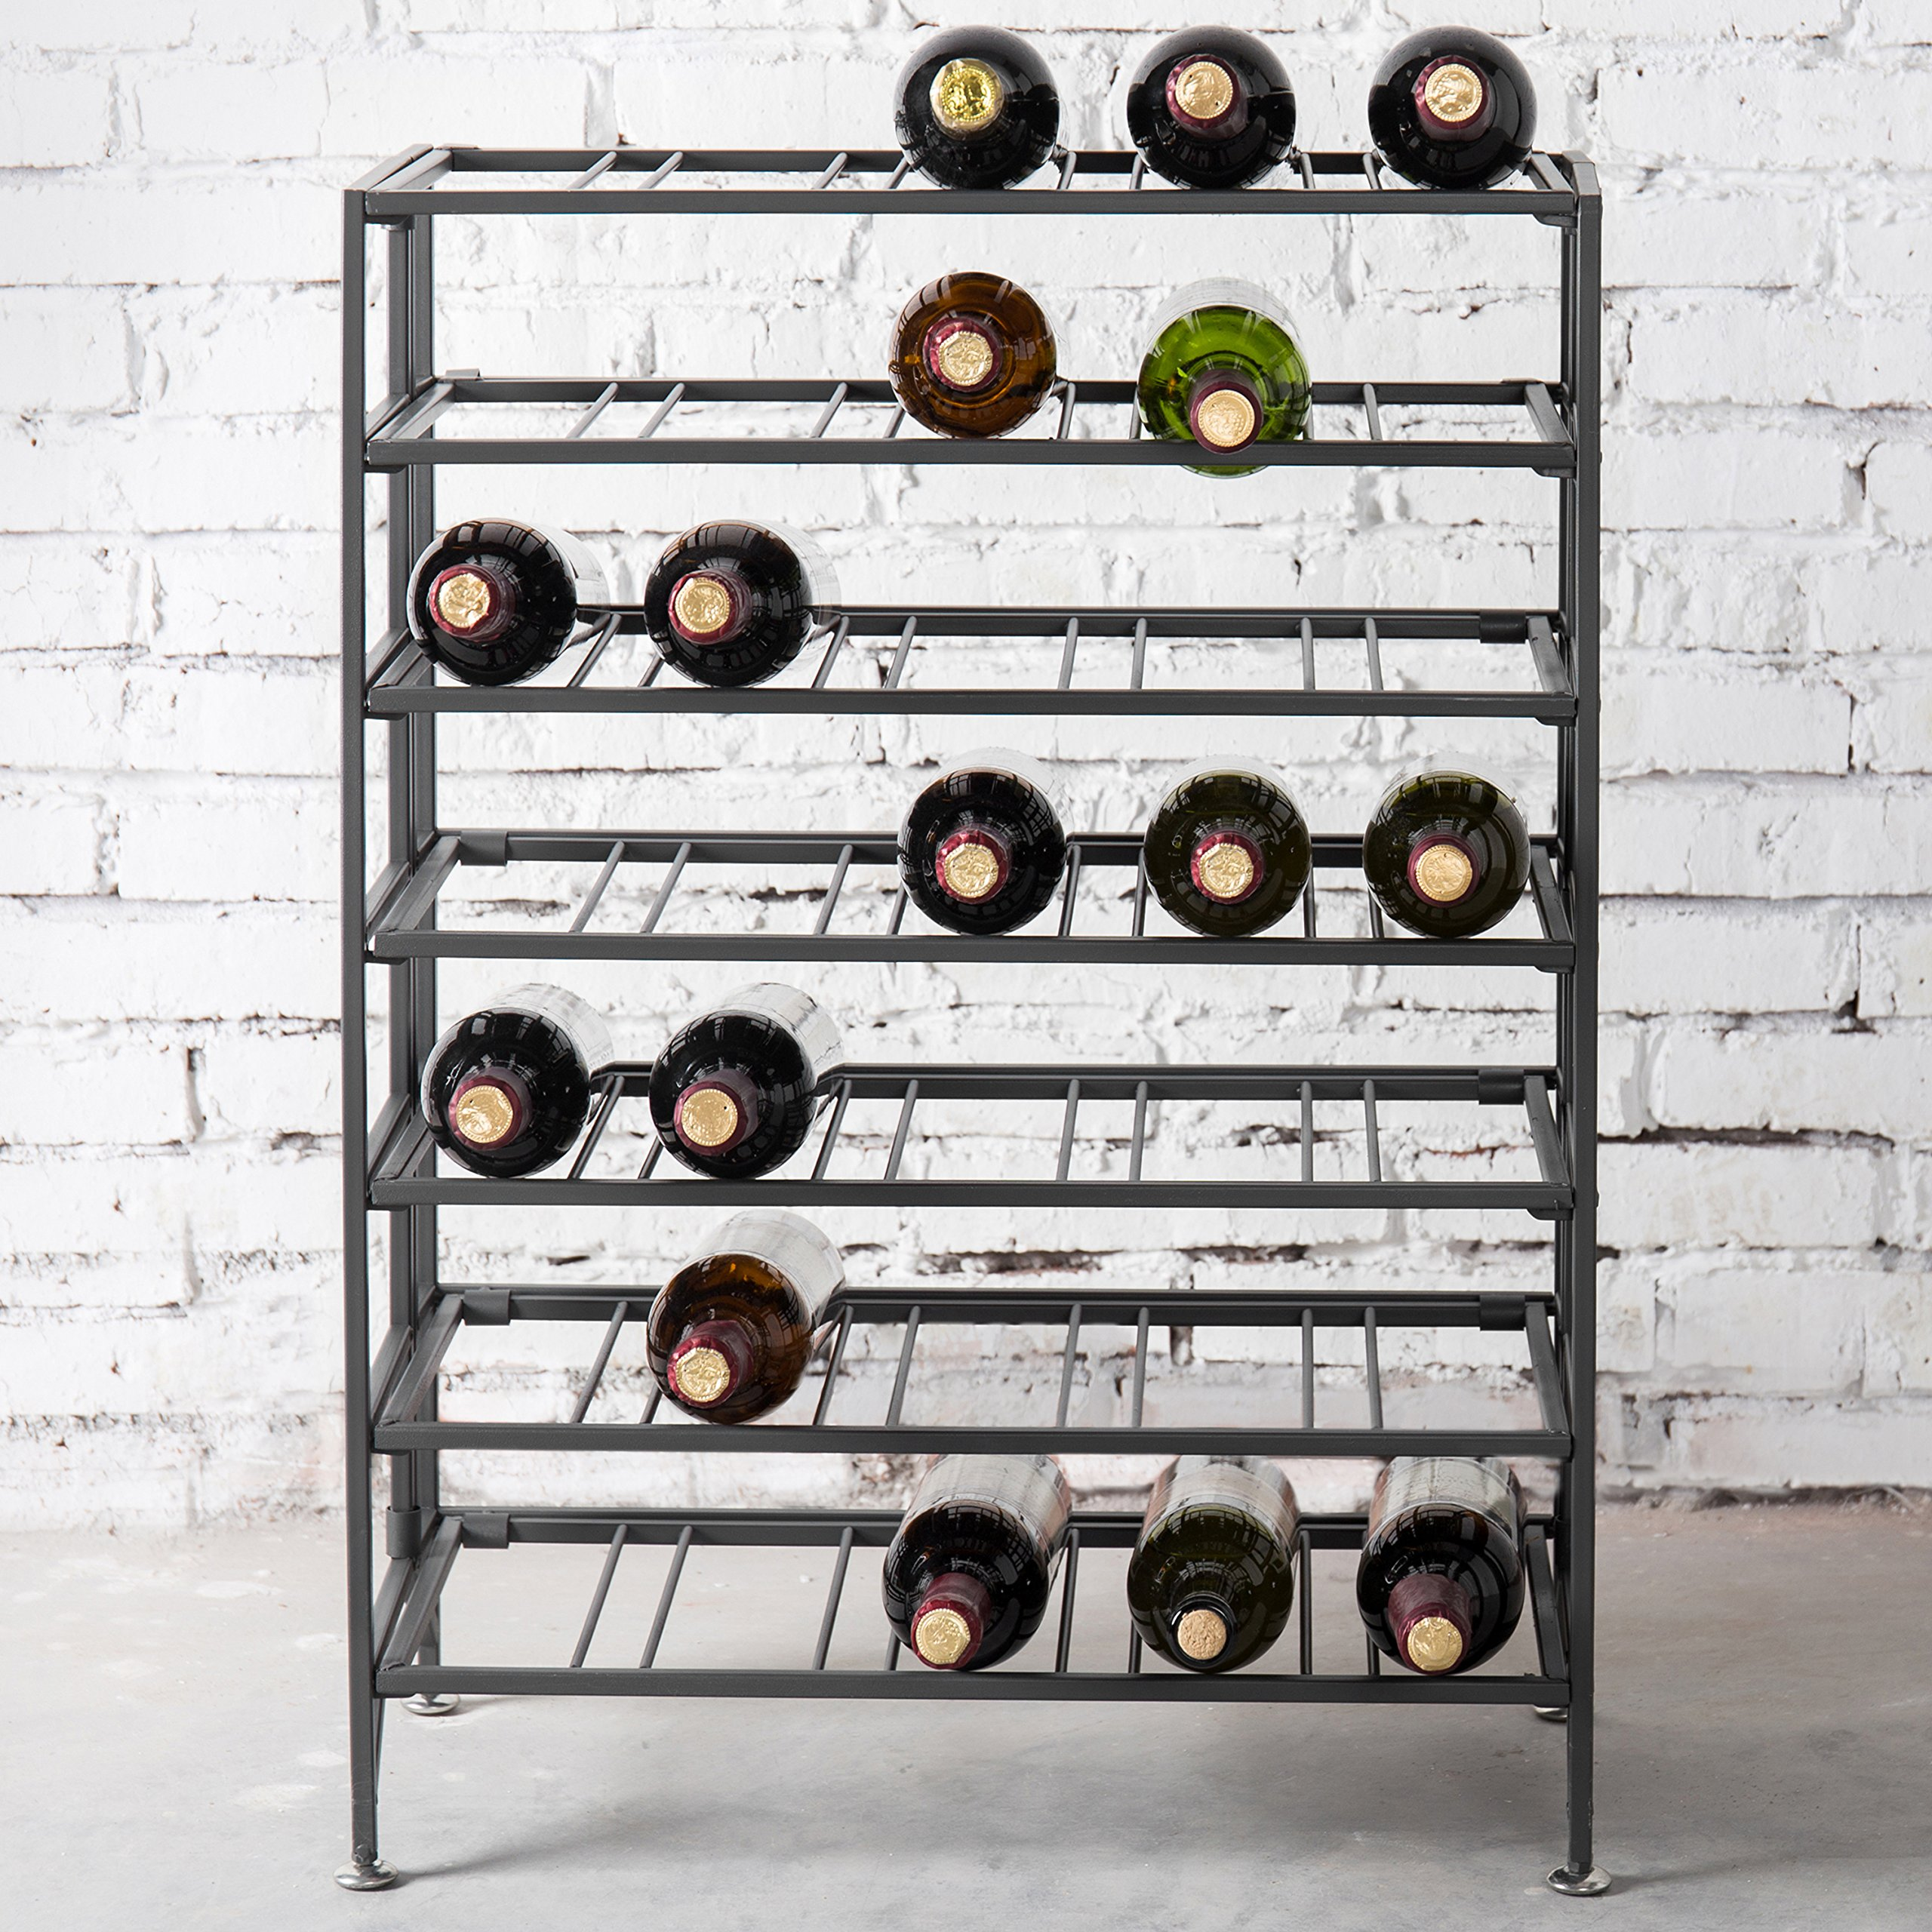 35-Bottle Connoisseurs Deluxe Foldable Gray Metal Wine Rack Cellar Storage Organizer Display Stand by MyGift